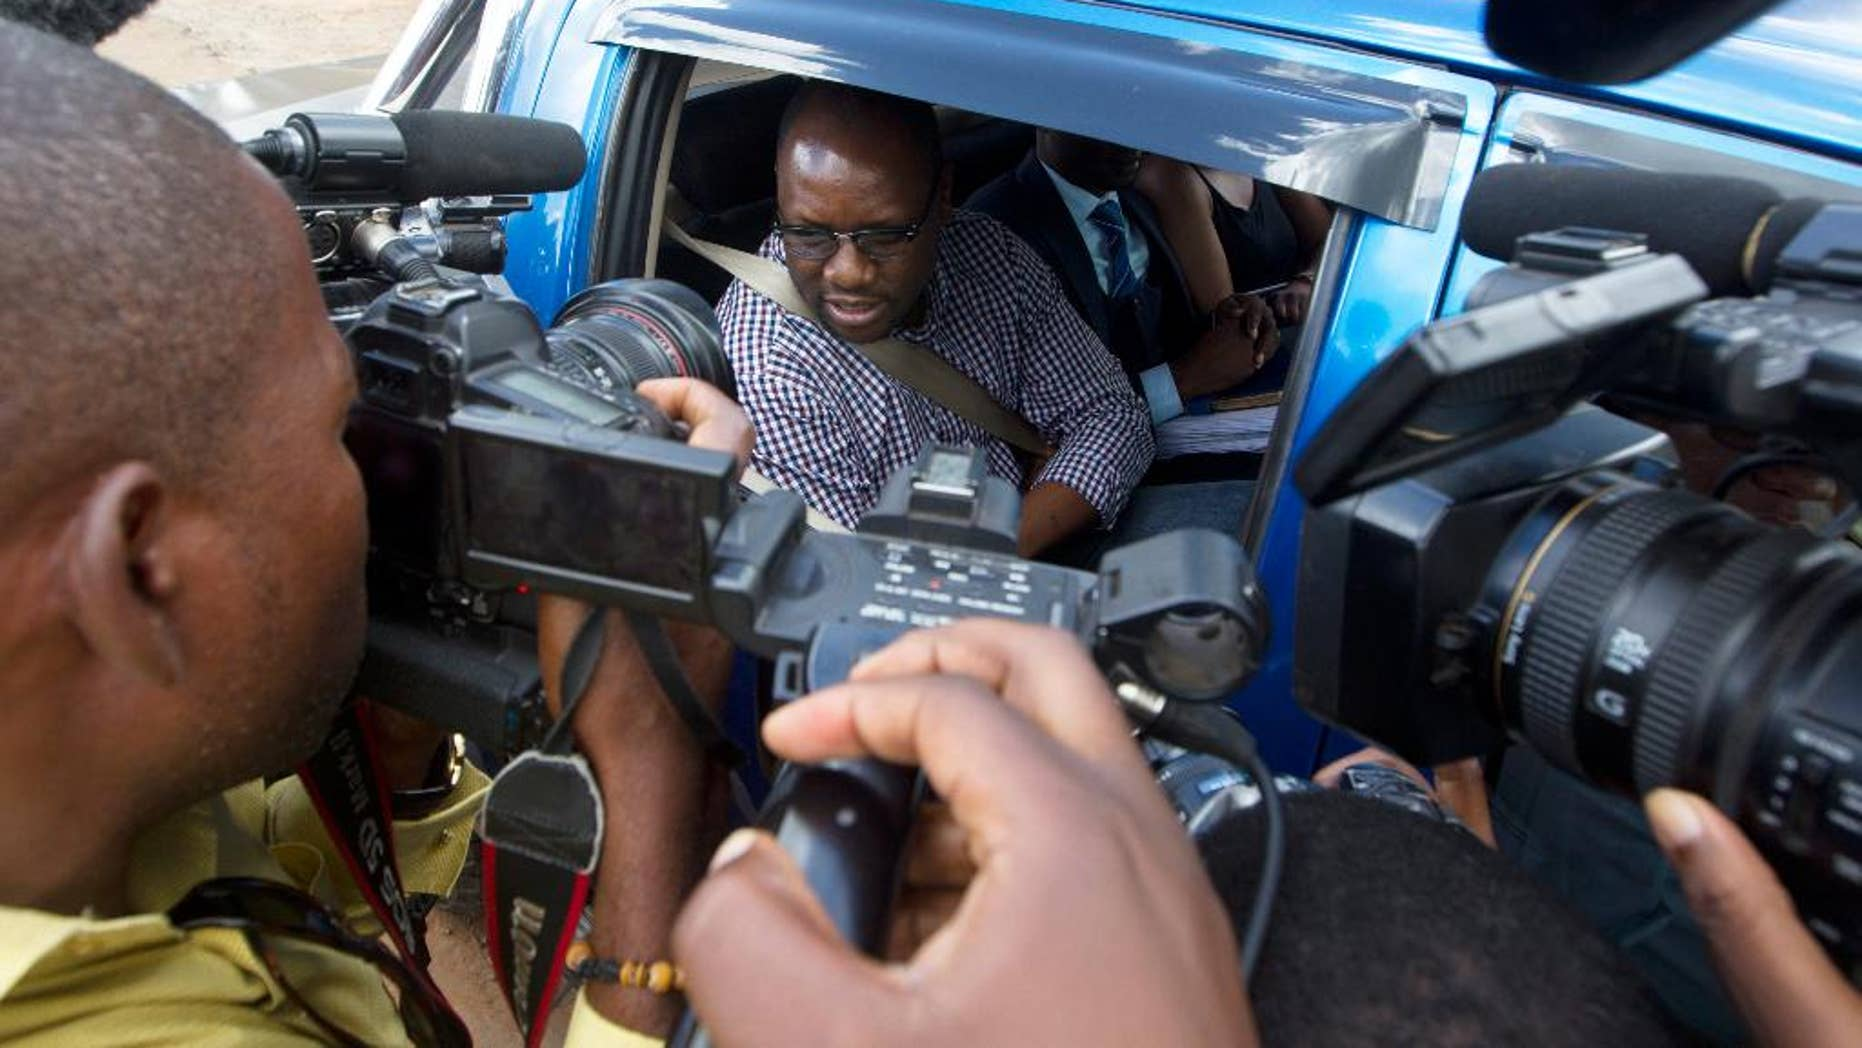 Zimbabwean Pastor Evans Mawarire talks to the media following his release from Chikurubi Maximum Prison on the outskirts of Harare, Thursday, Feb, 9, 2017.  The trail was postponed and Mawarire released on bail, accused of subversion for protests against the government of President Robert Mugabe. (AP Photo/Tsvangirayi Mukwazhi)